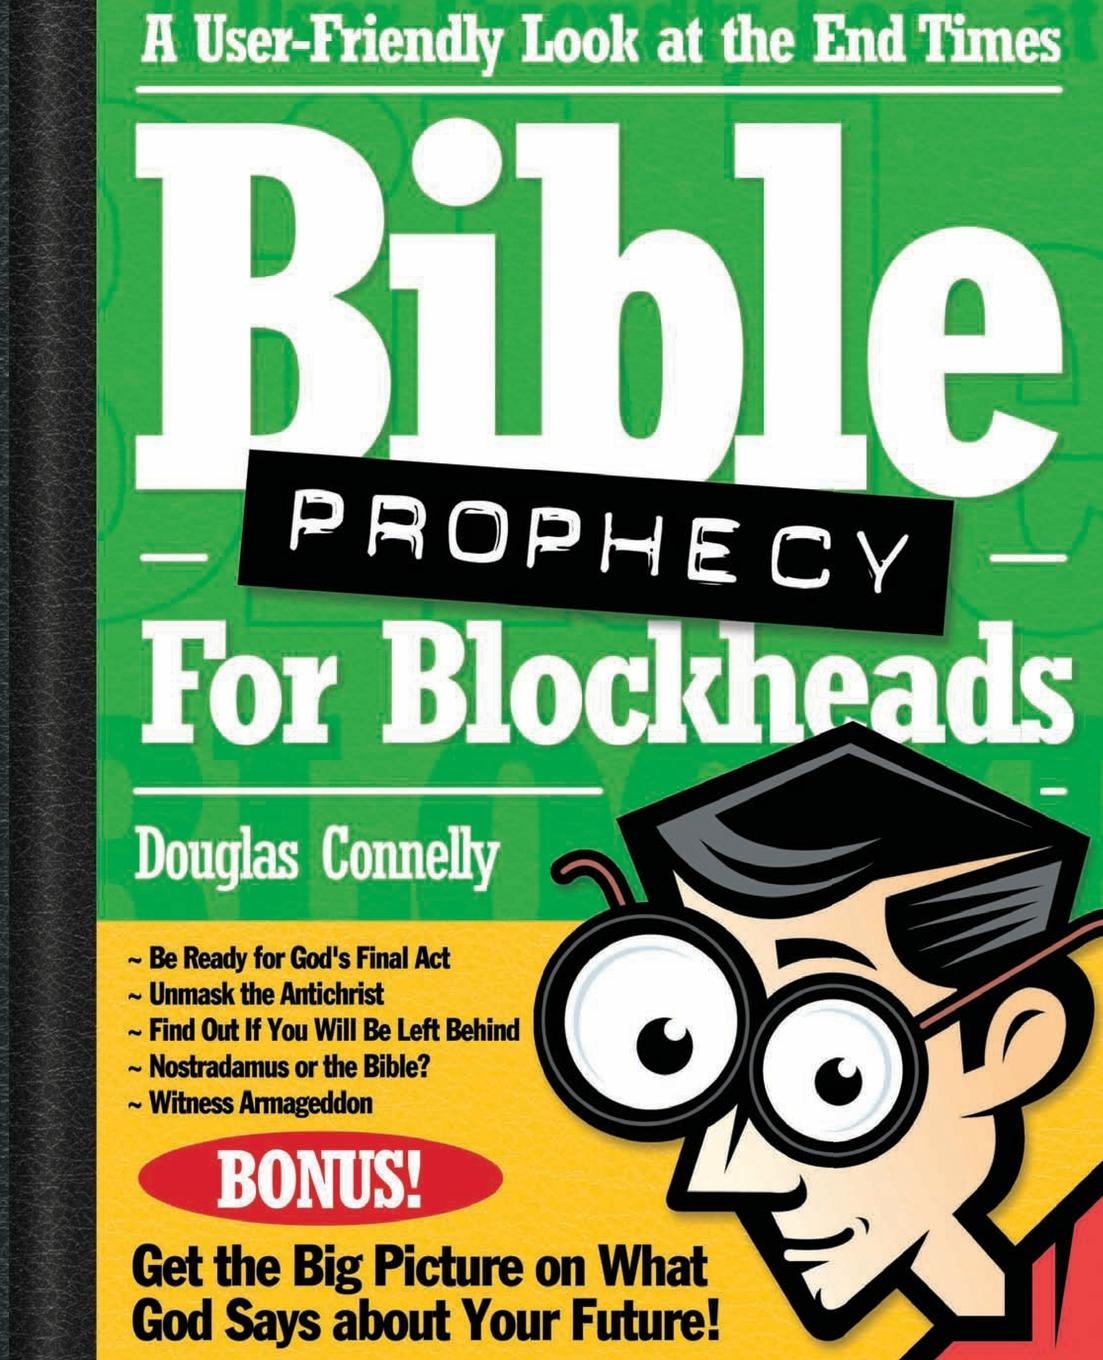 Douglas Connelly Bible Prophecy for Blockheads. A User-Friendly Look at the End Times the end times